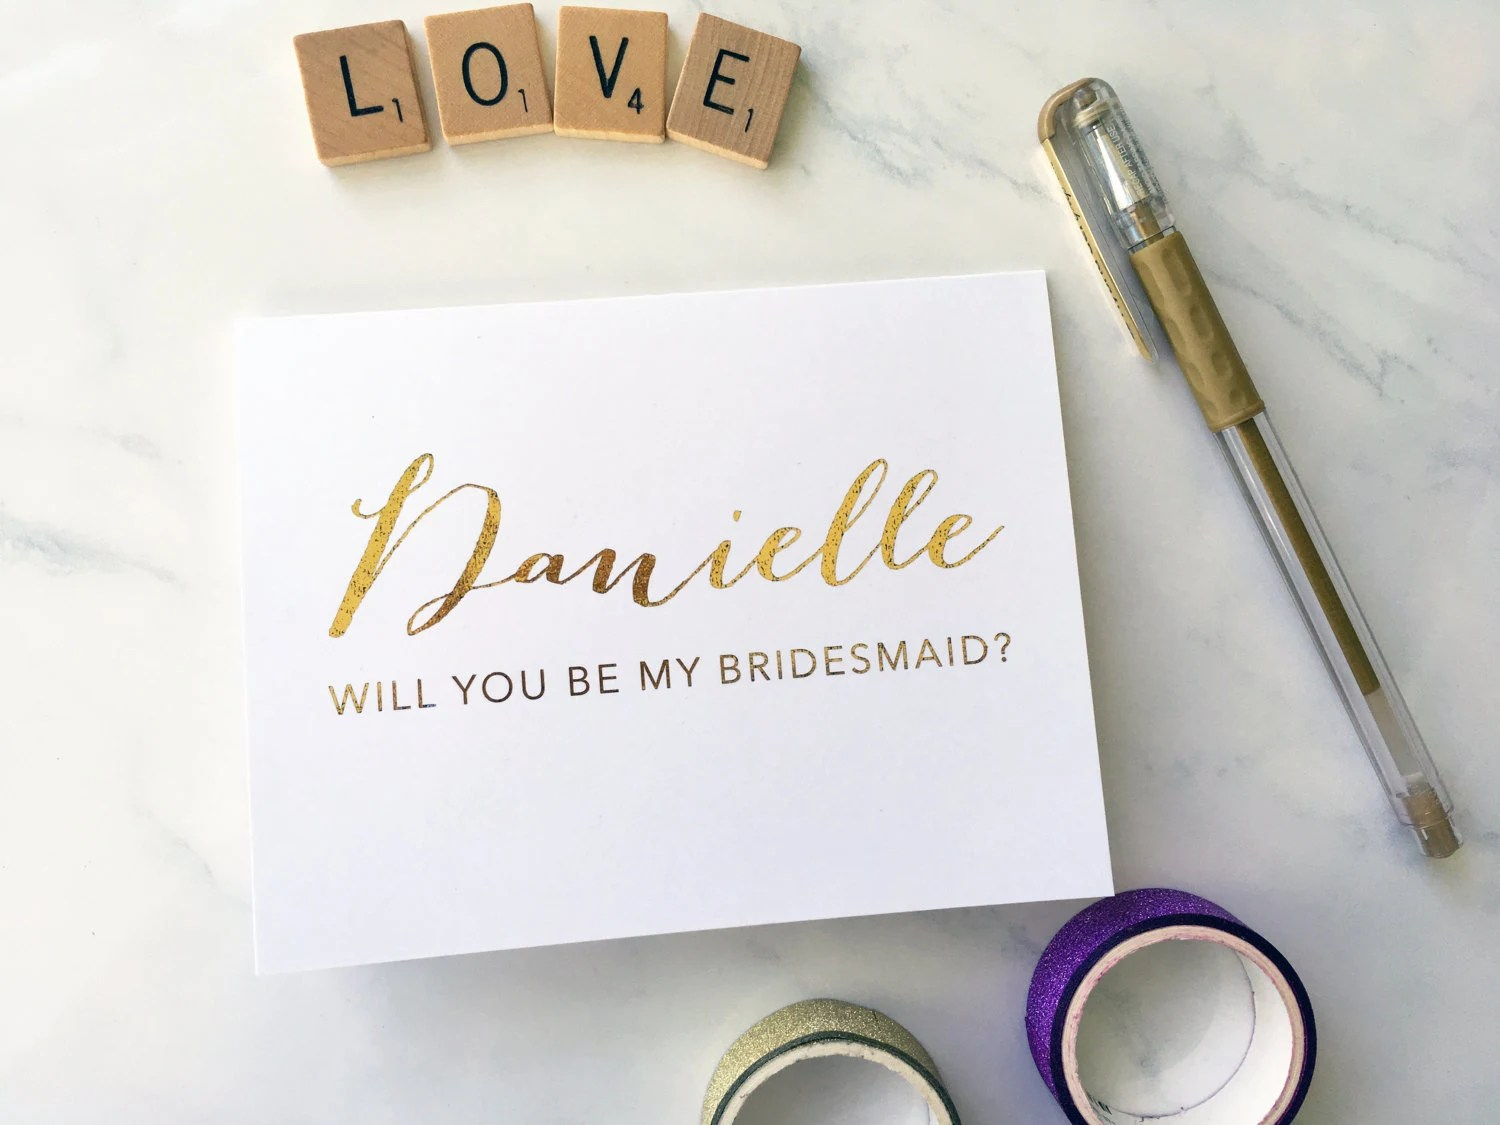 Will you be my bridesmaid maid of honor matron of honor  image 3